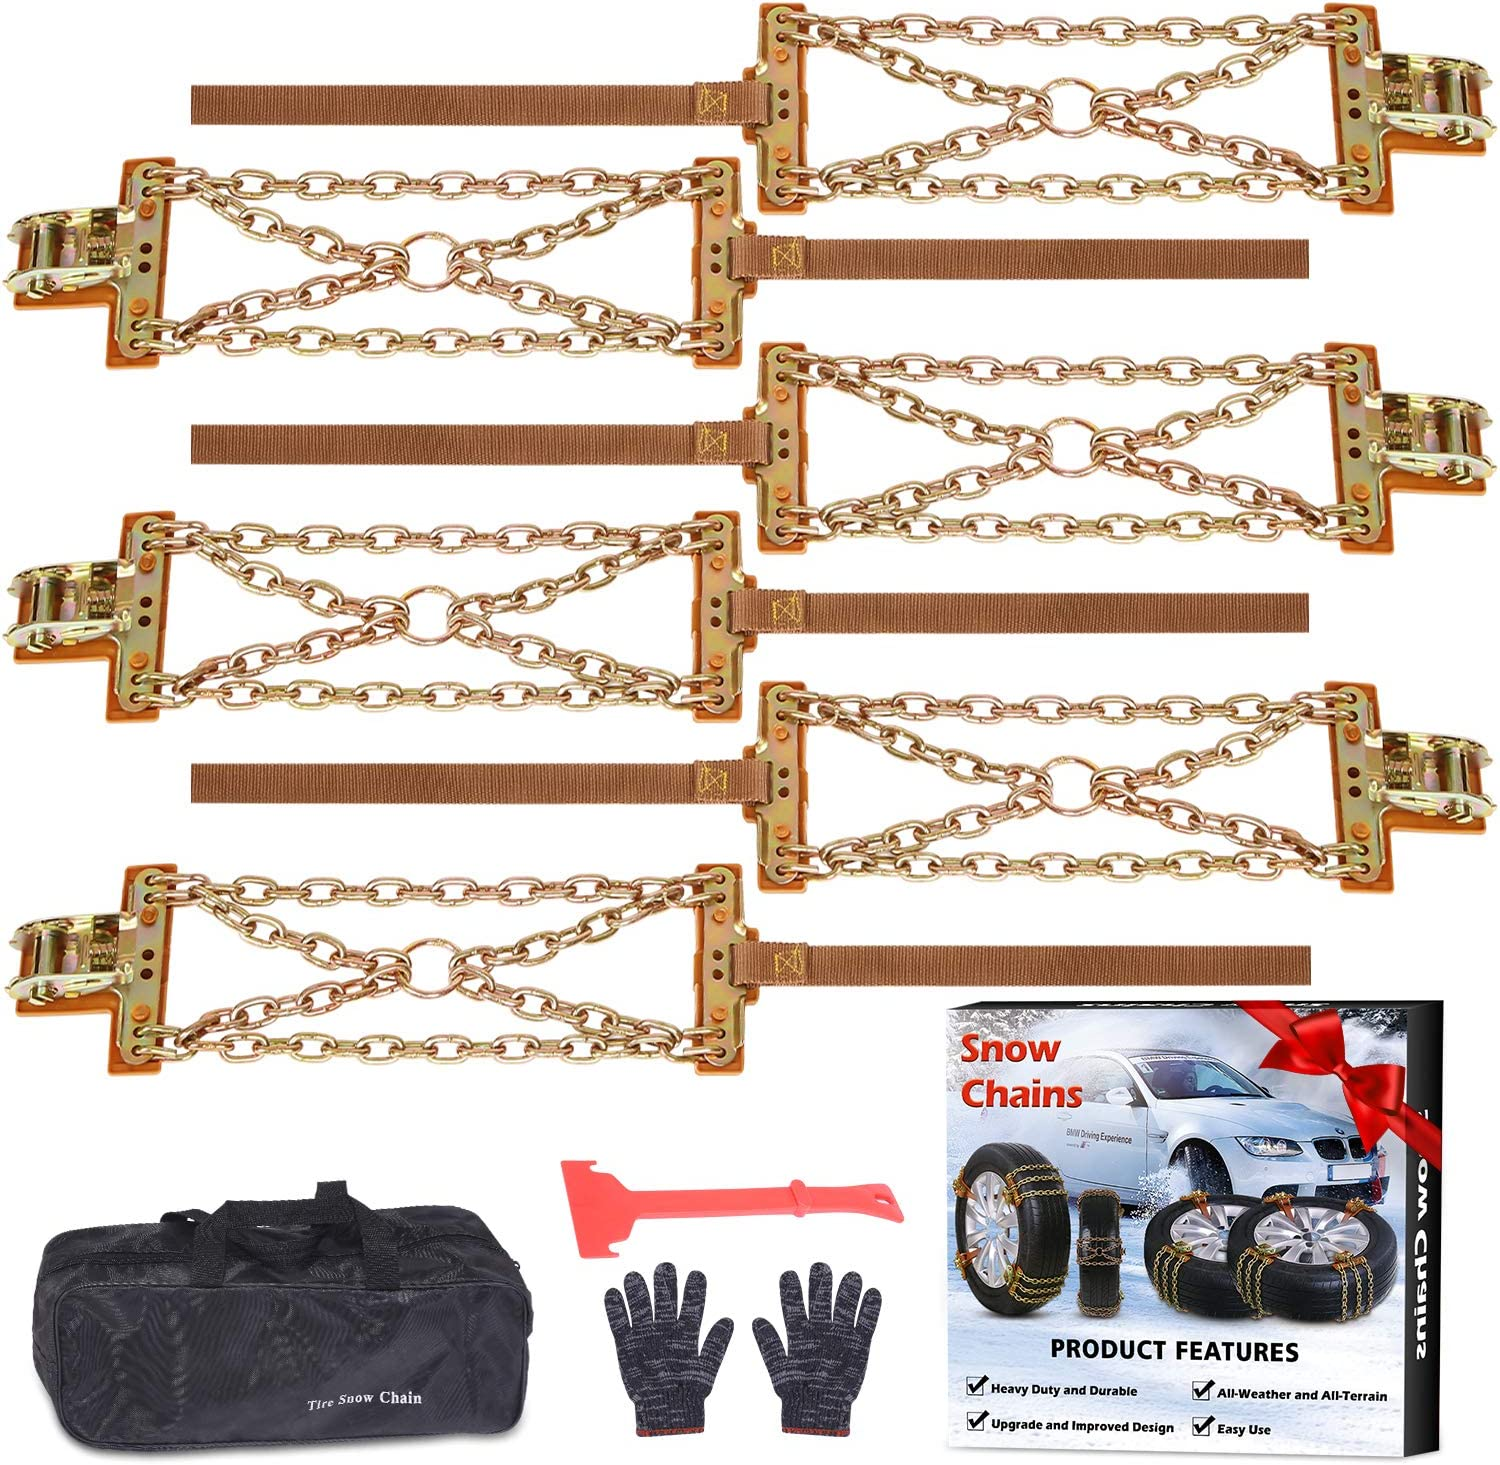 Tire Chains Snow for suvs Max 88% OFF Cars Sedan Family San Diego Mall Automobil